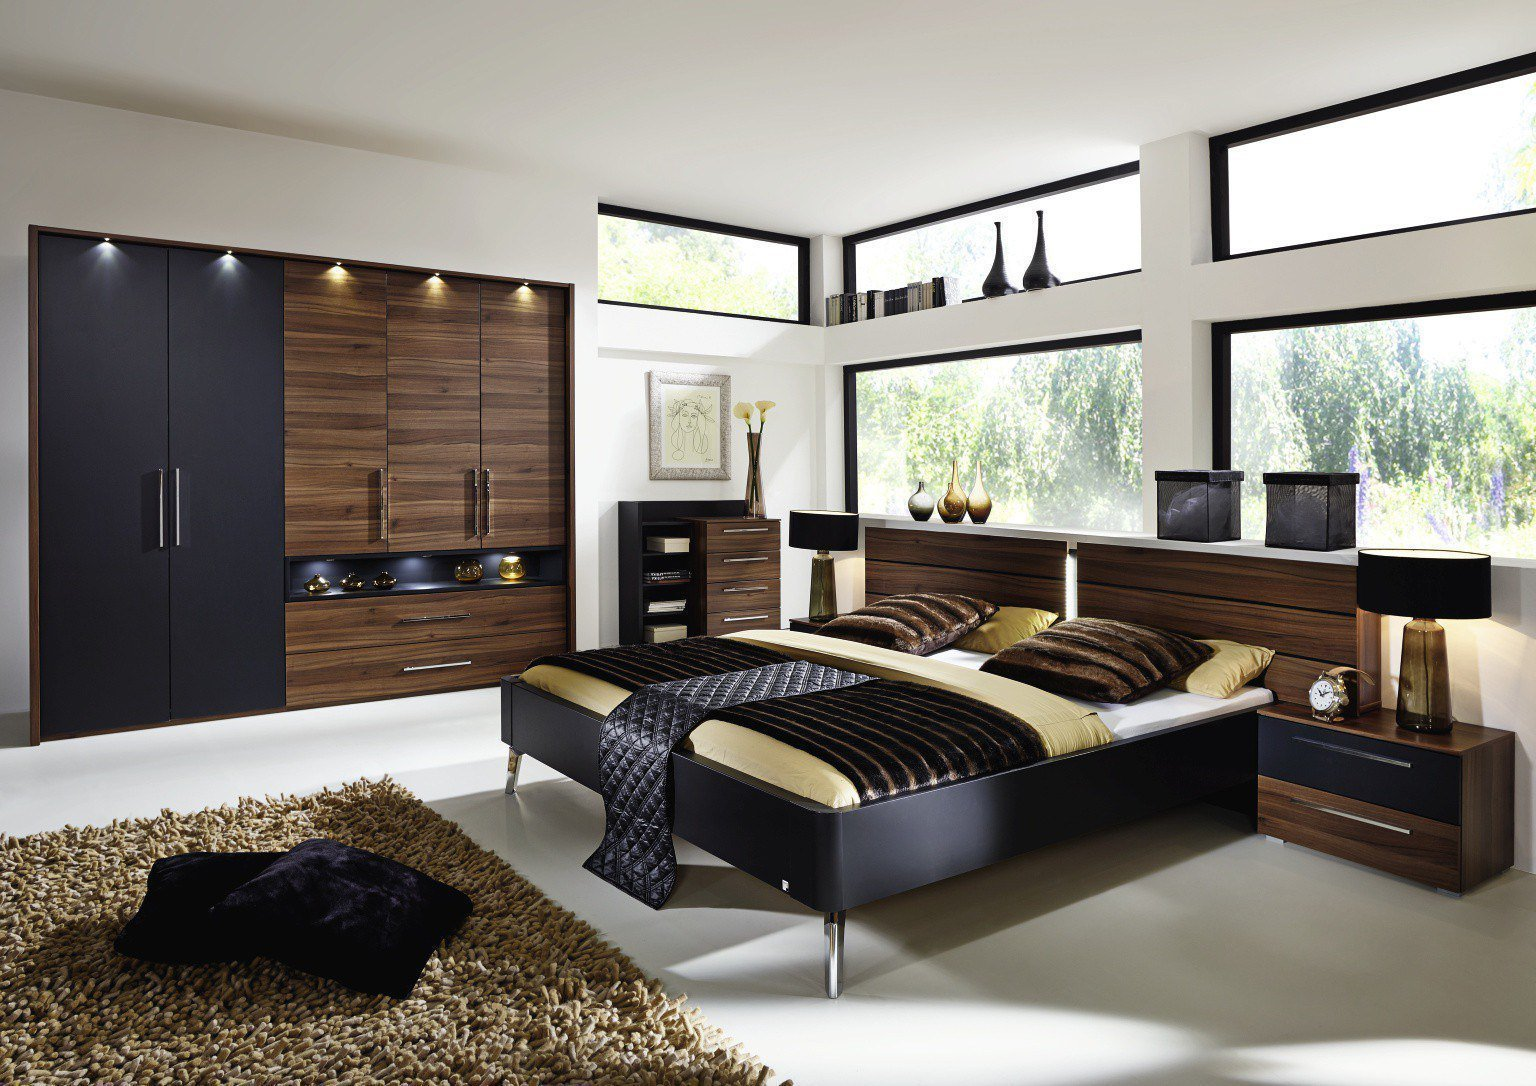 rauch manila schlafzimmer m bel nussbaum m bel letz. Black Bedroom Furniture Sets. Home Design Ideas